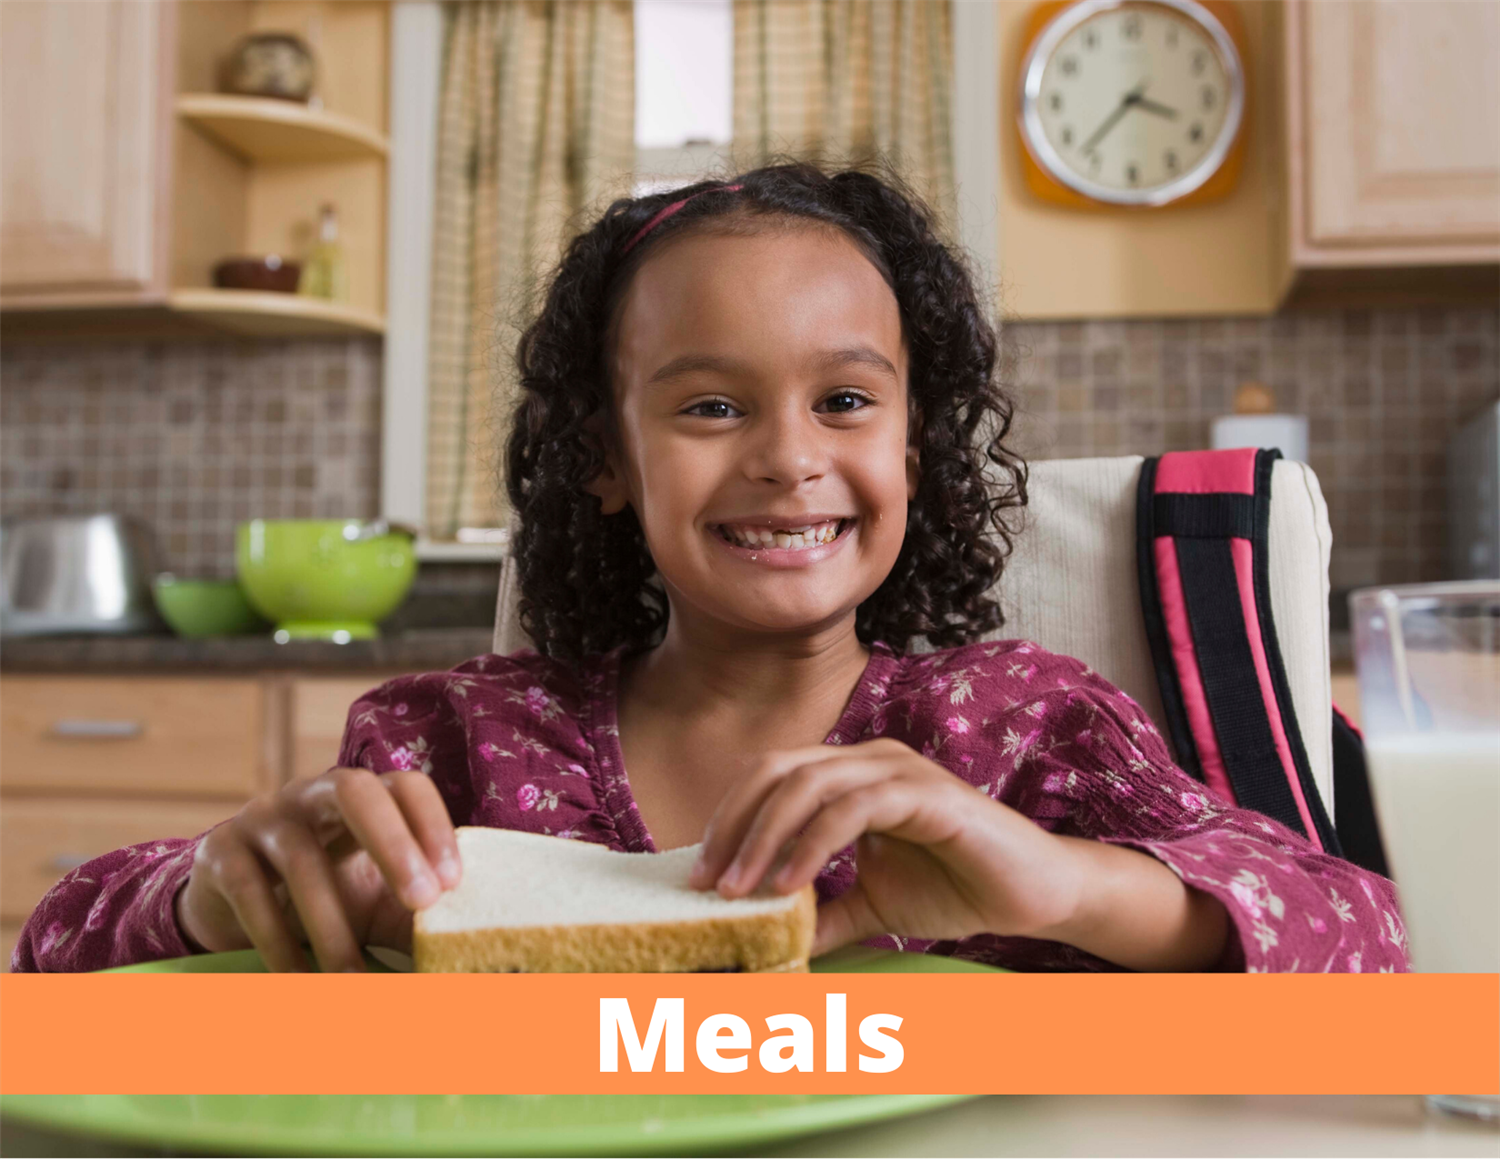 Click for More Information about STMA's Commitment to Provide Meals